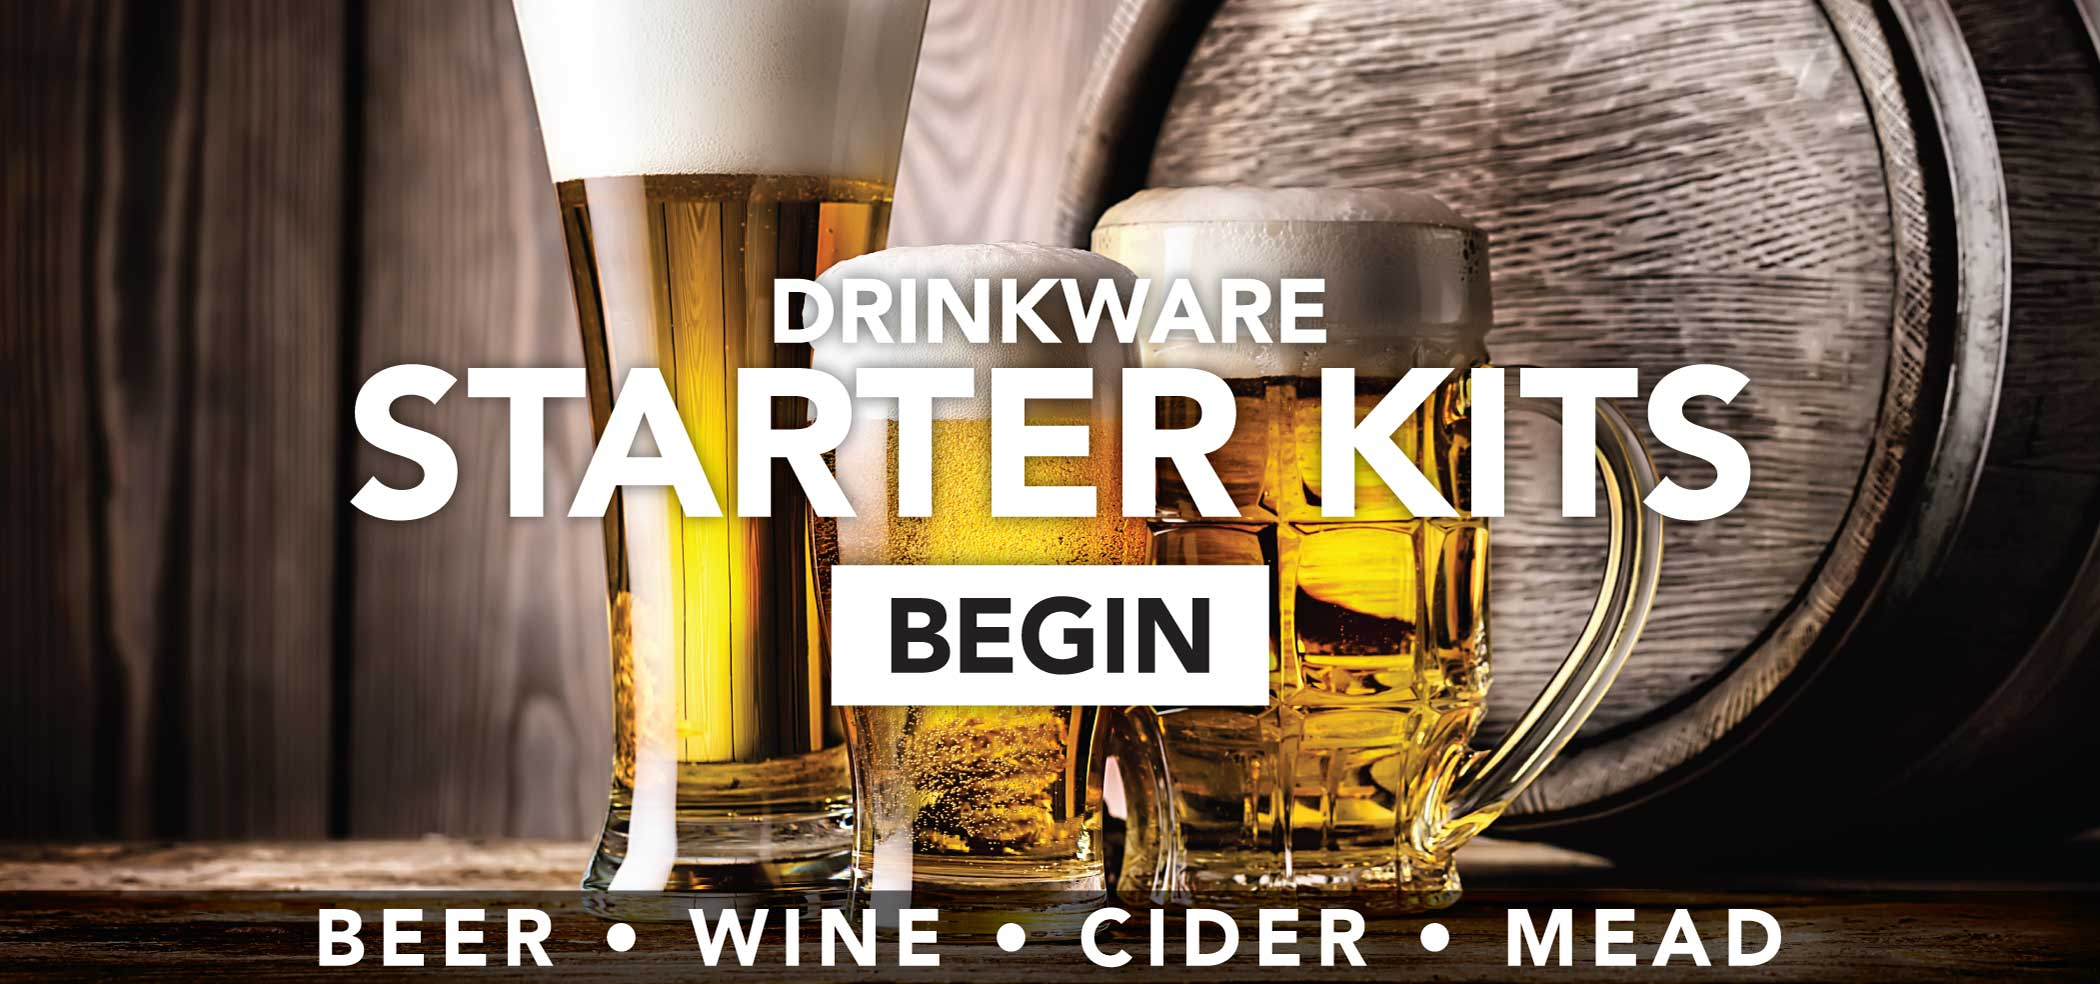 Brewery and Winery Drinkware Starter Kits